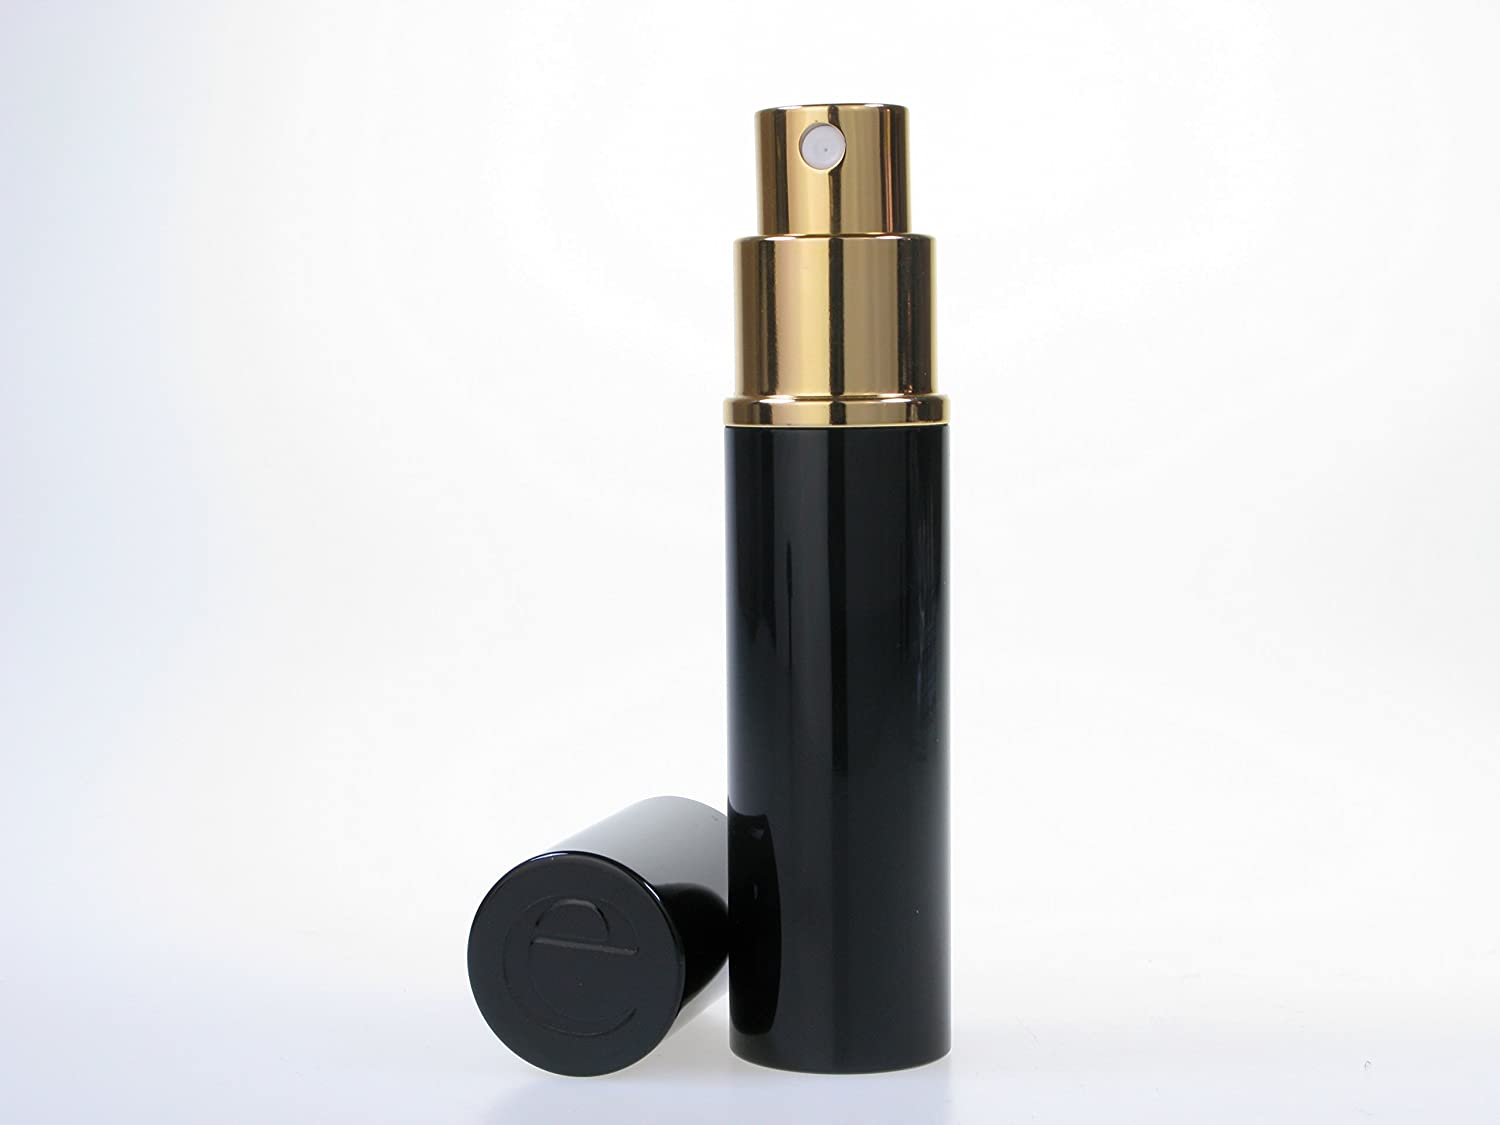 The Essential Atomizer Co. Quality Black Perfume Atomizer for Handbag, Pocket & Travel, 10ml. Refillable, includes funnel the essential atomizer company